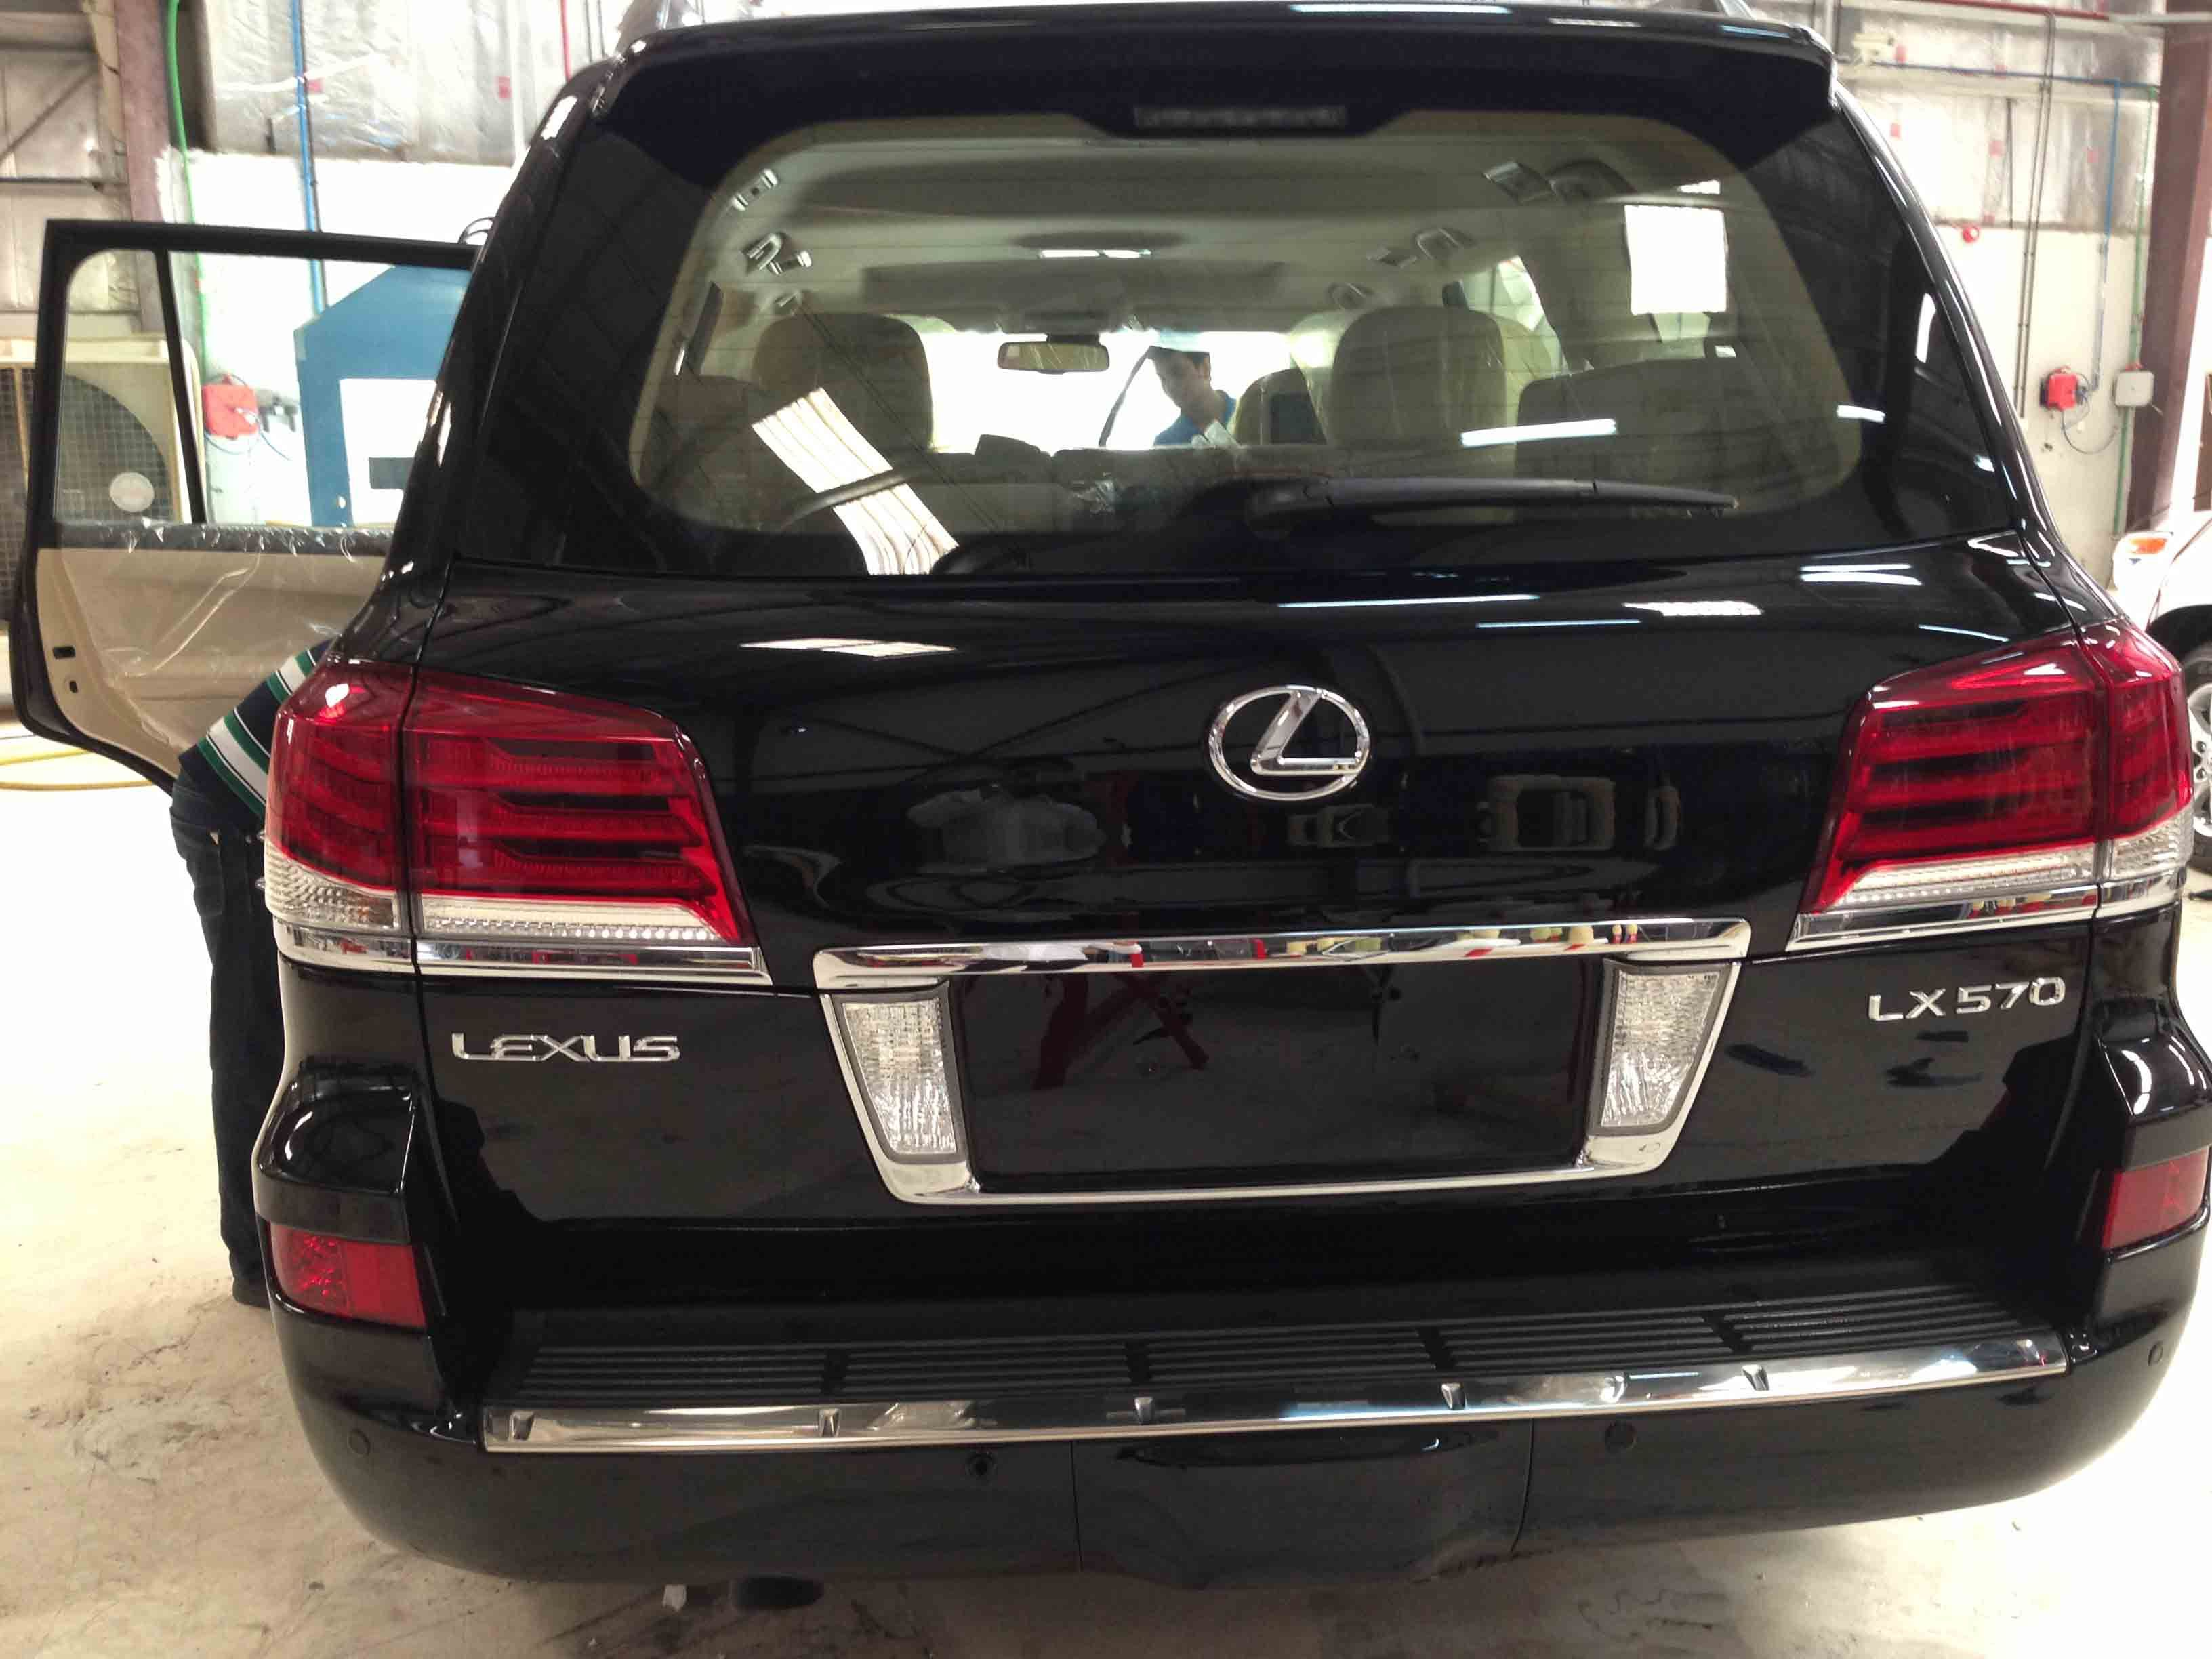 B7 Armored Lexus LX570 for immediate delivery 2014